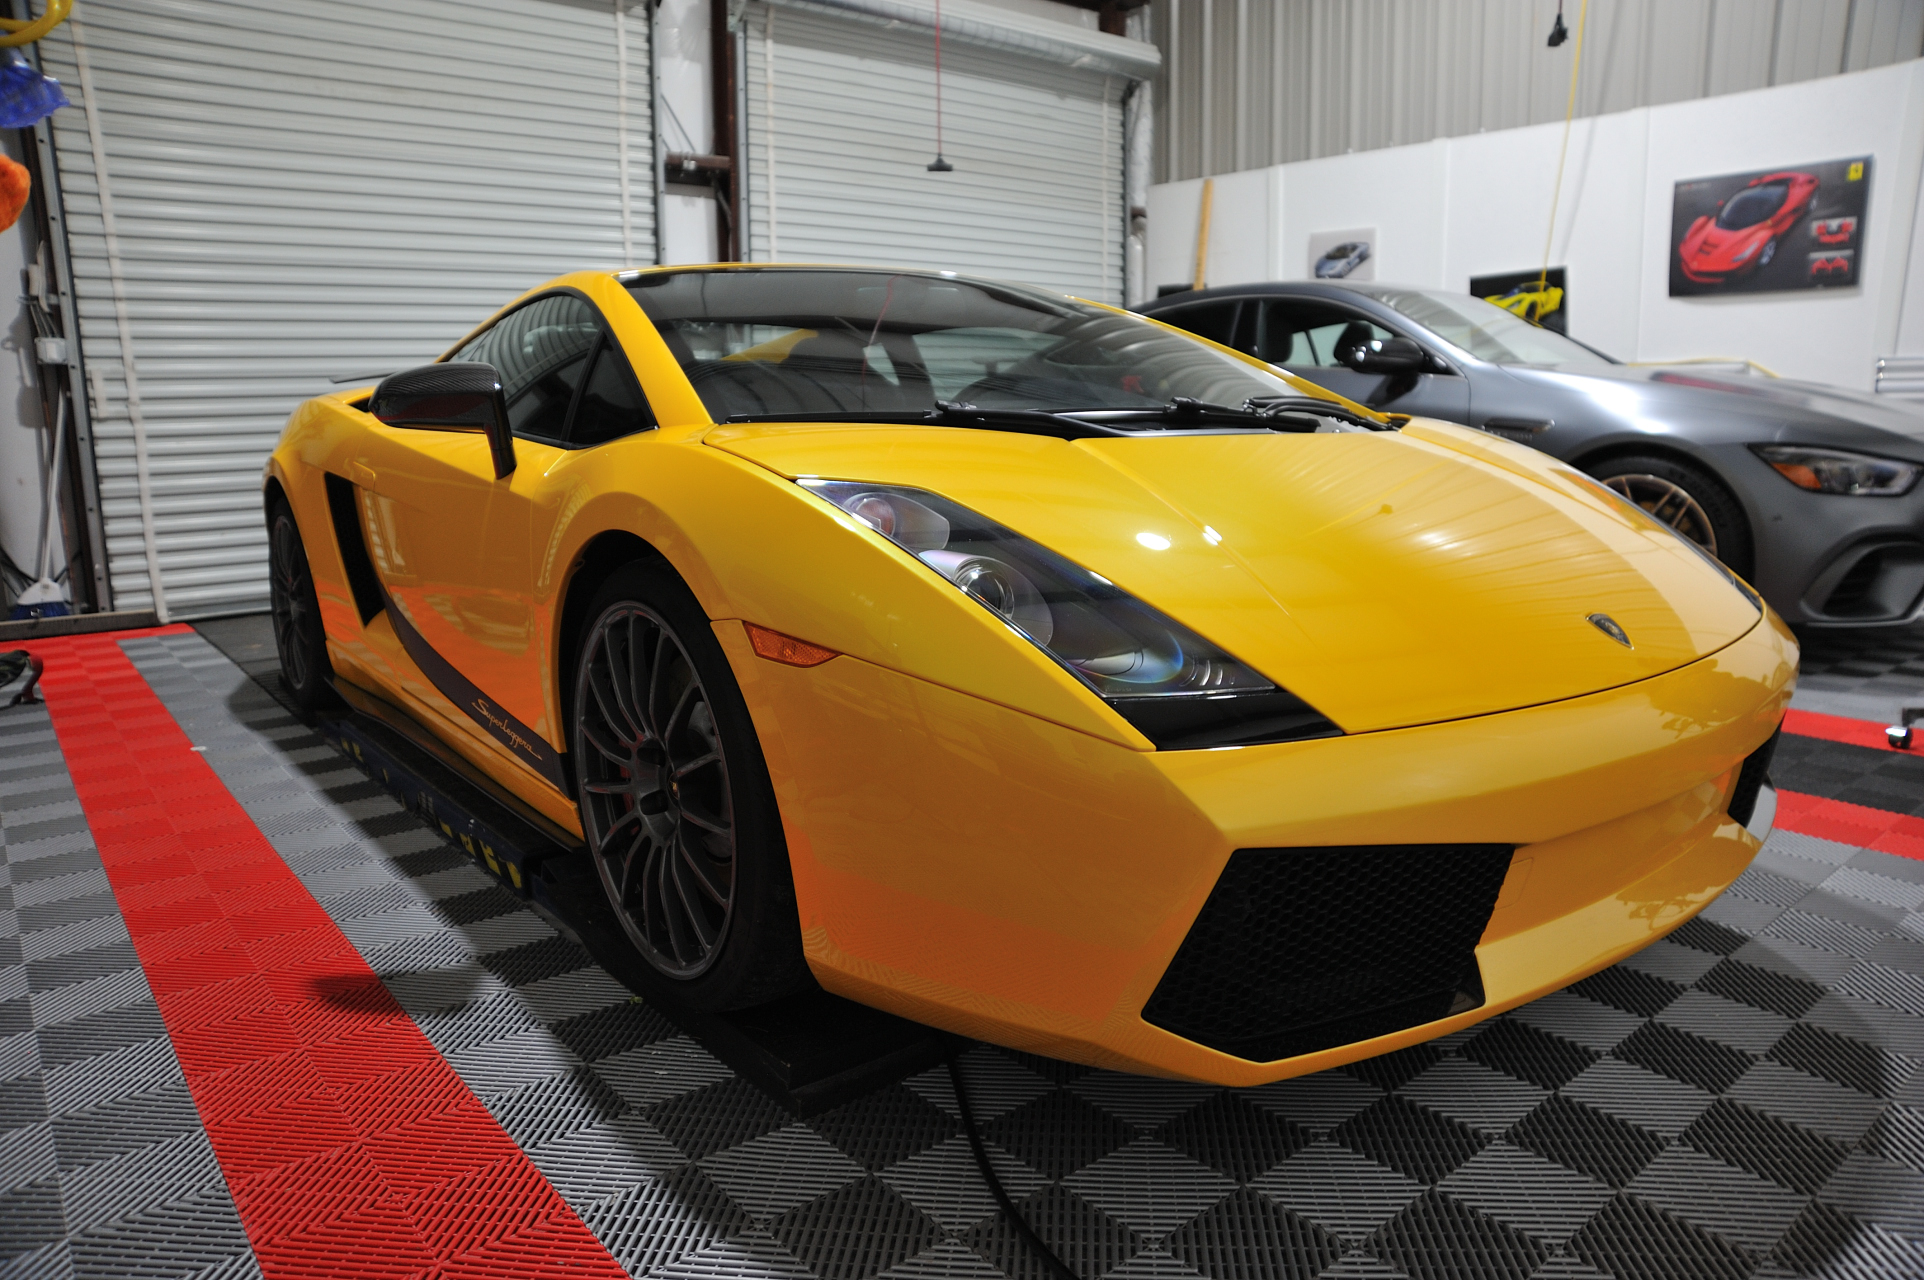 Photo of a Ceramic Coating of a 2014 Lamborghini Gallardo